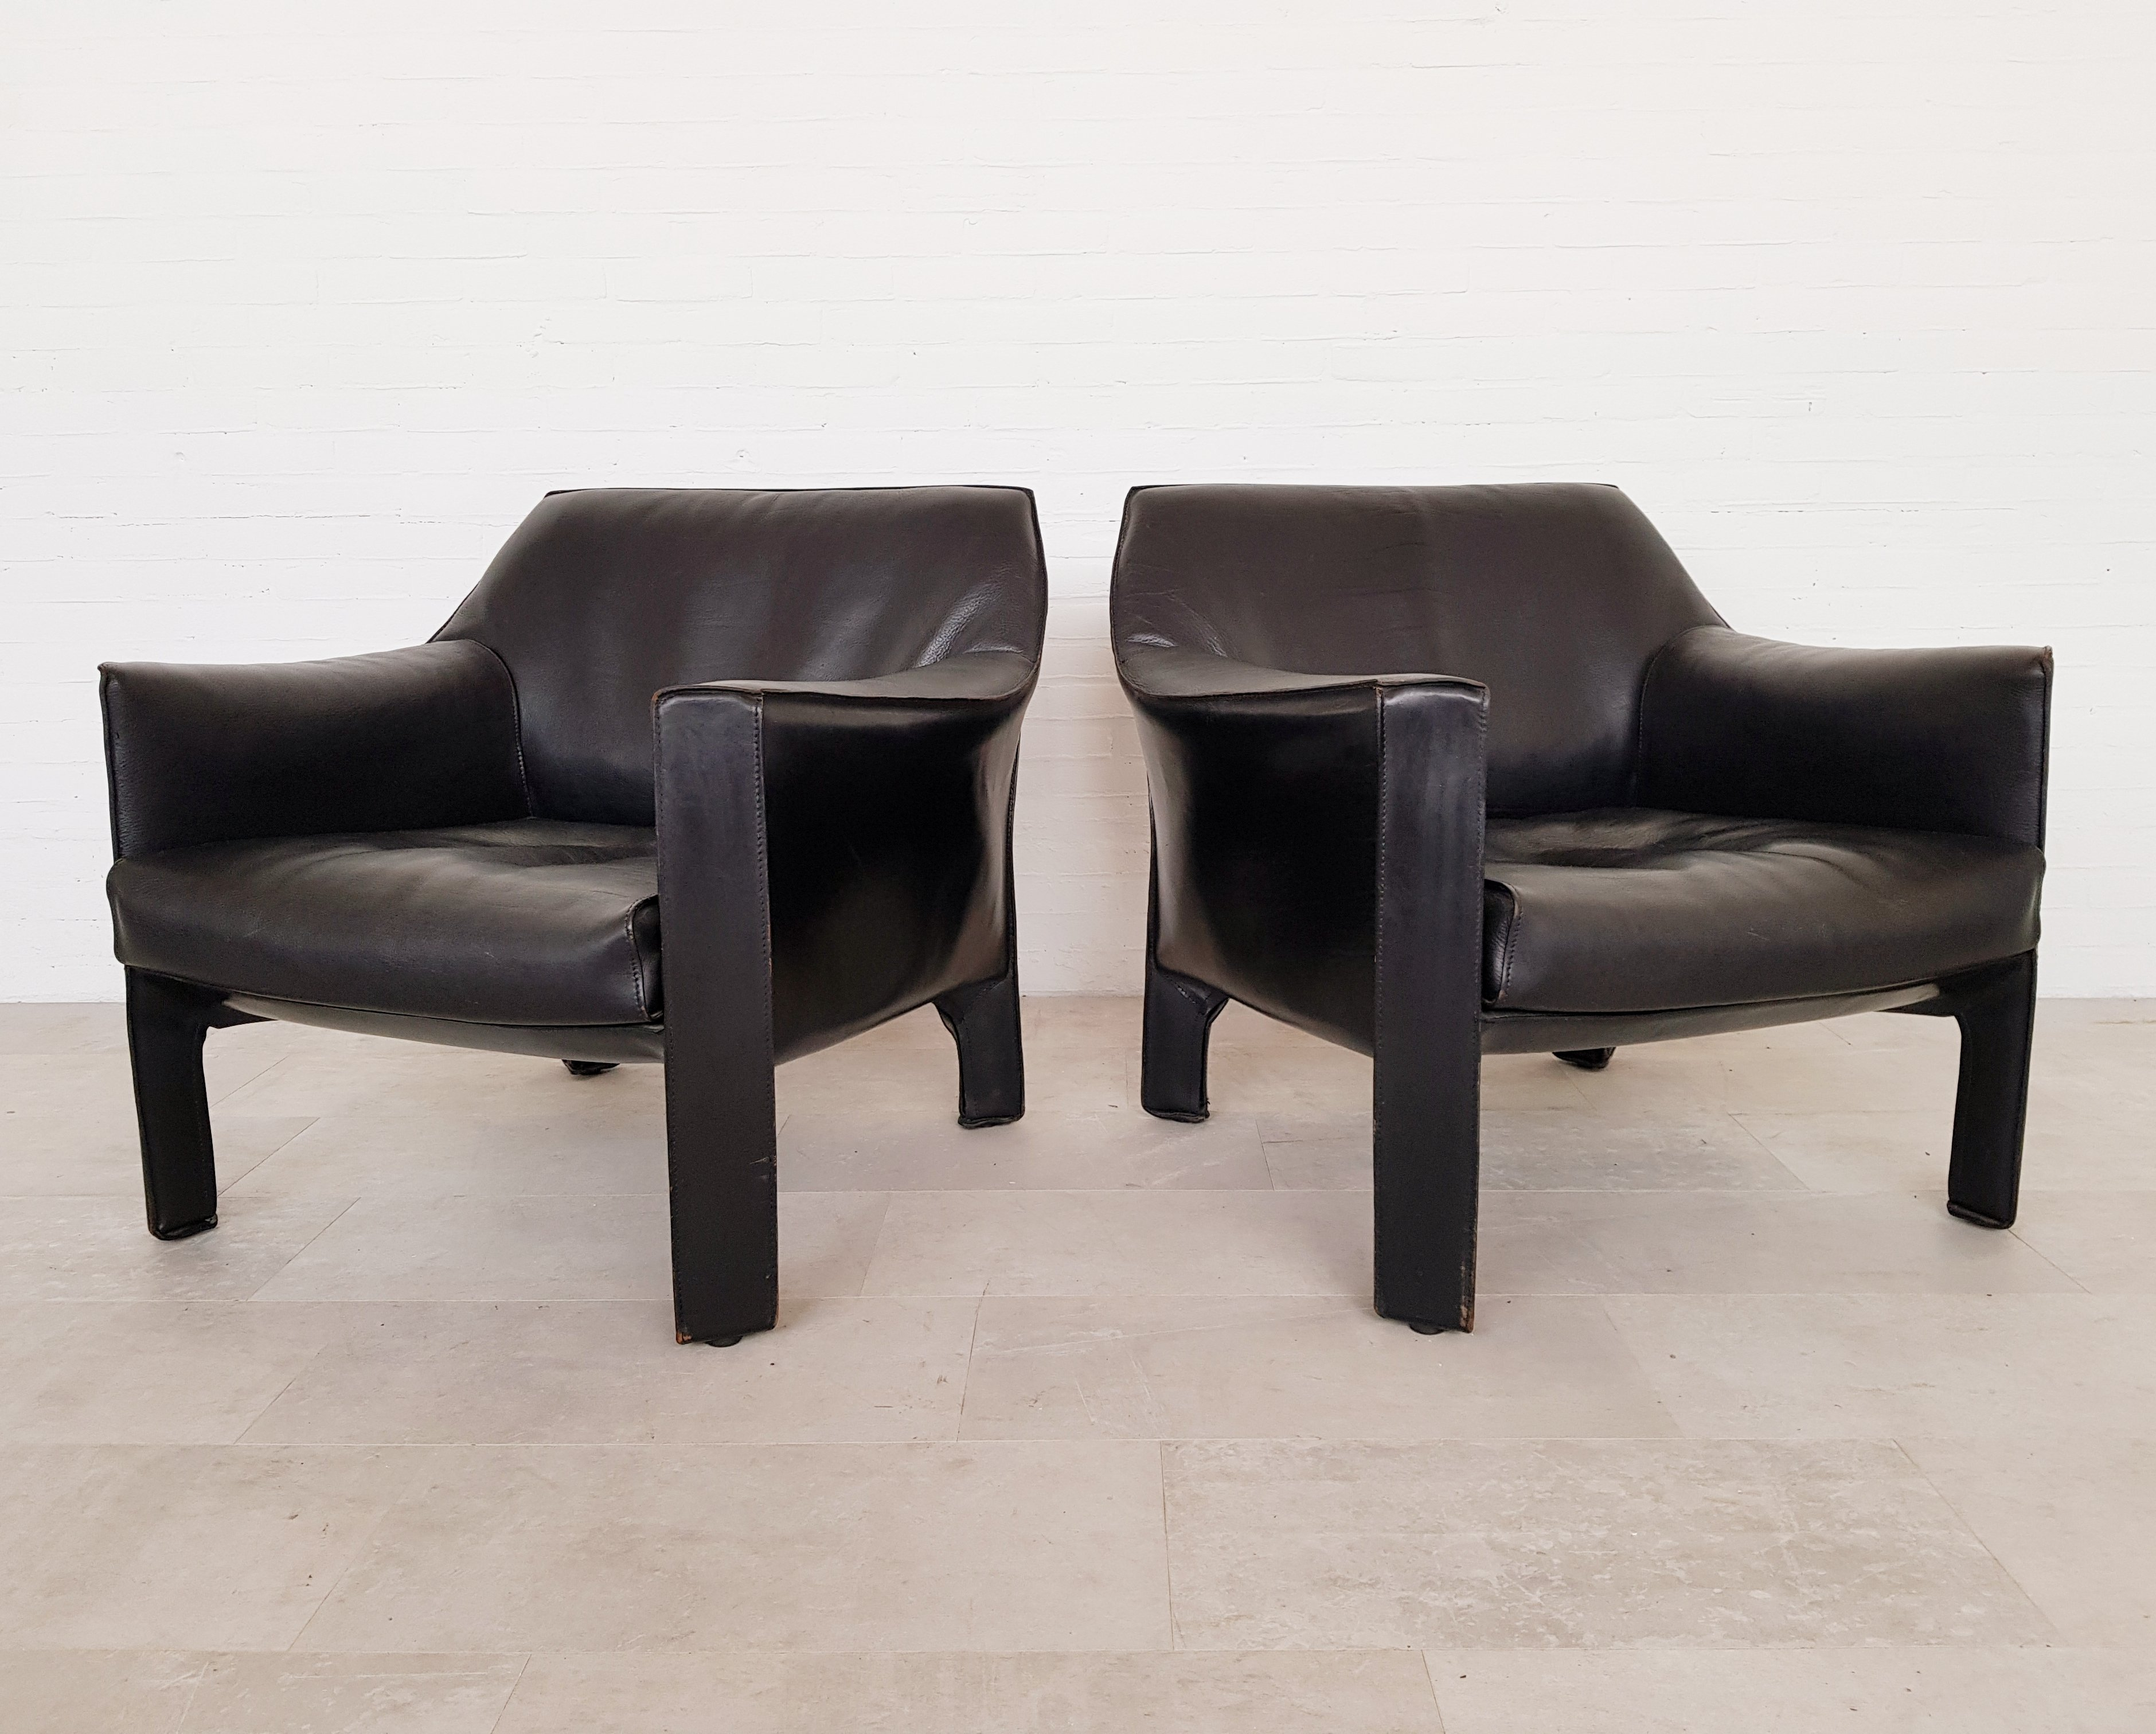 Terrific Cassina Cab 415 Black Leather Lounge Chairs By Mario Bellini Pabps2019 Chair Design Images Pabps2019Com